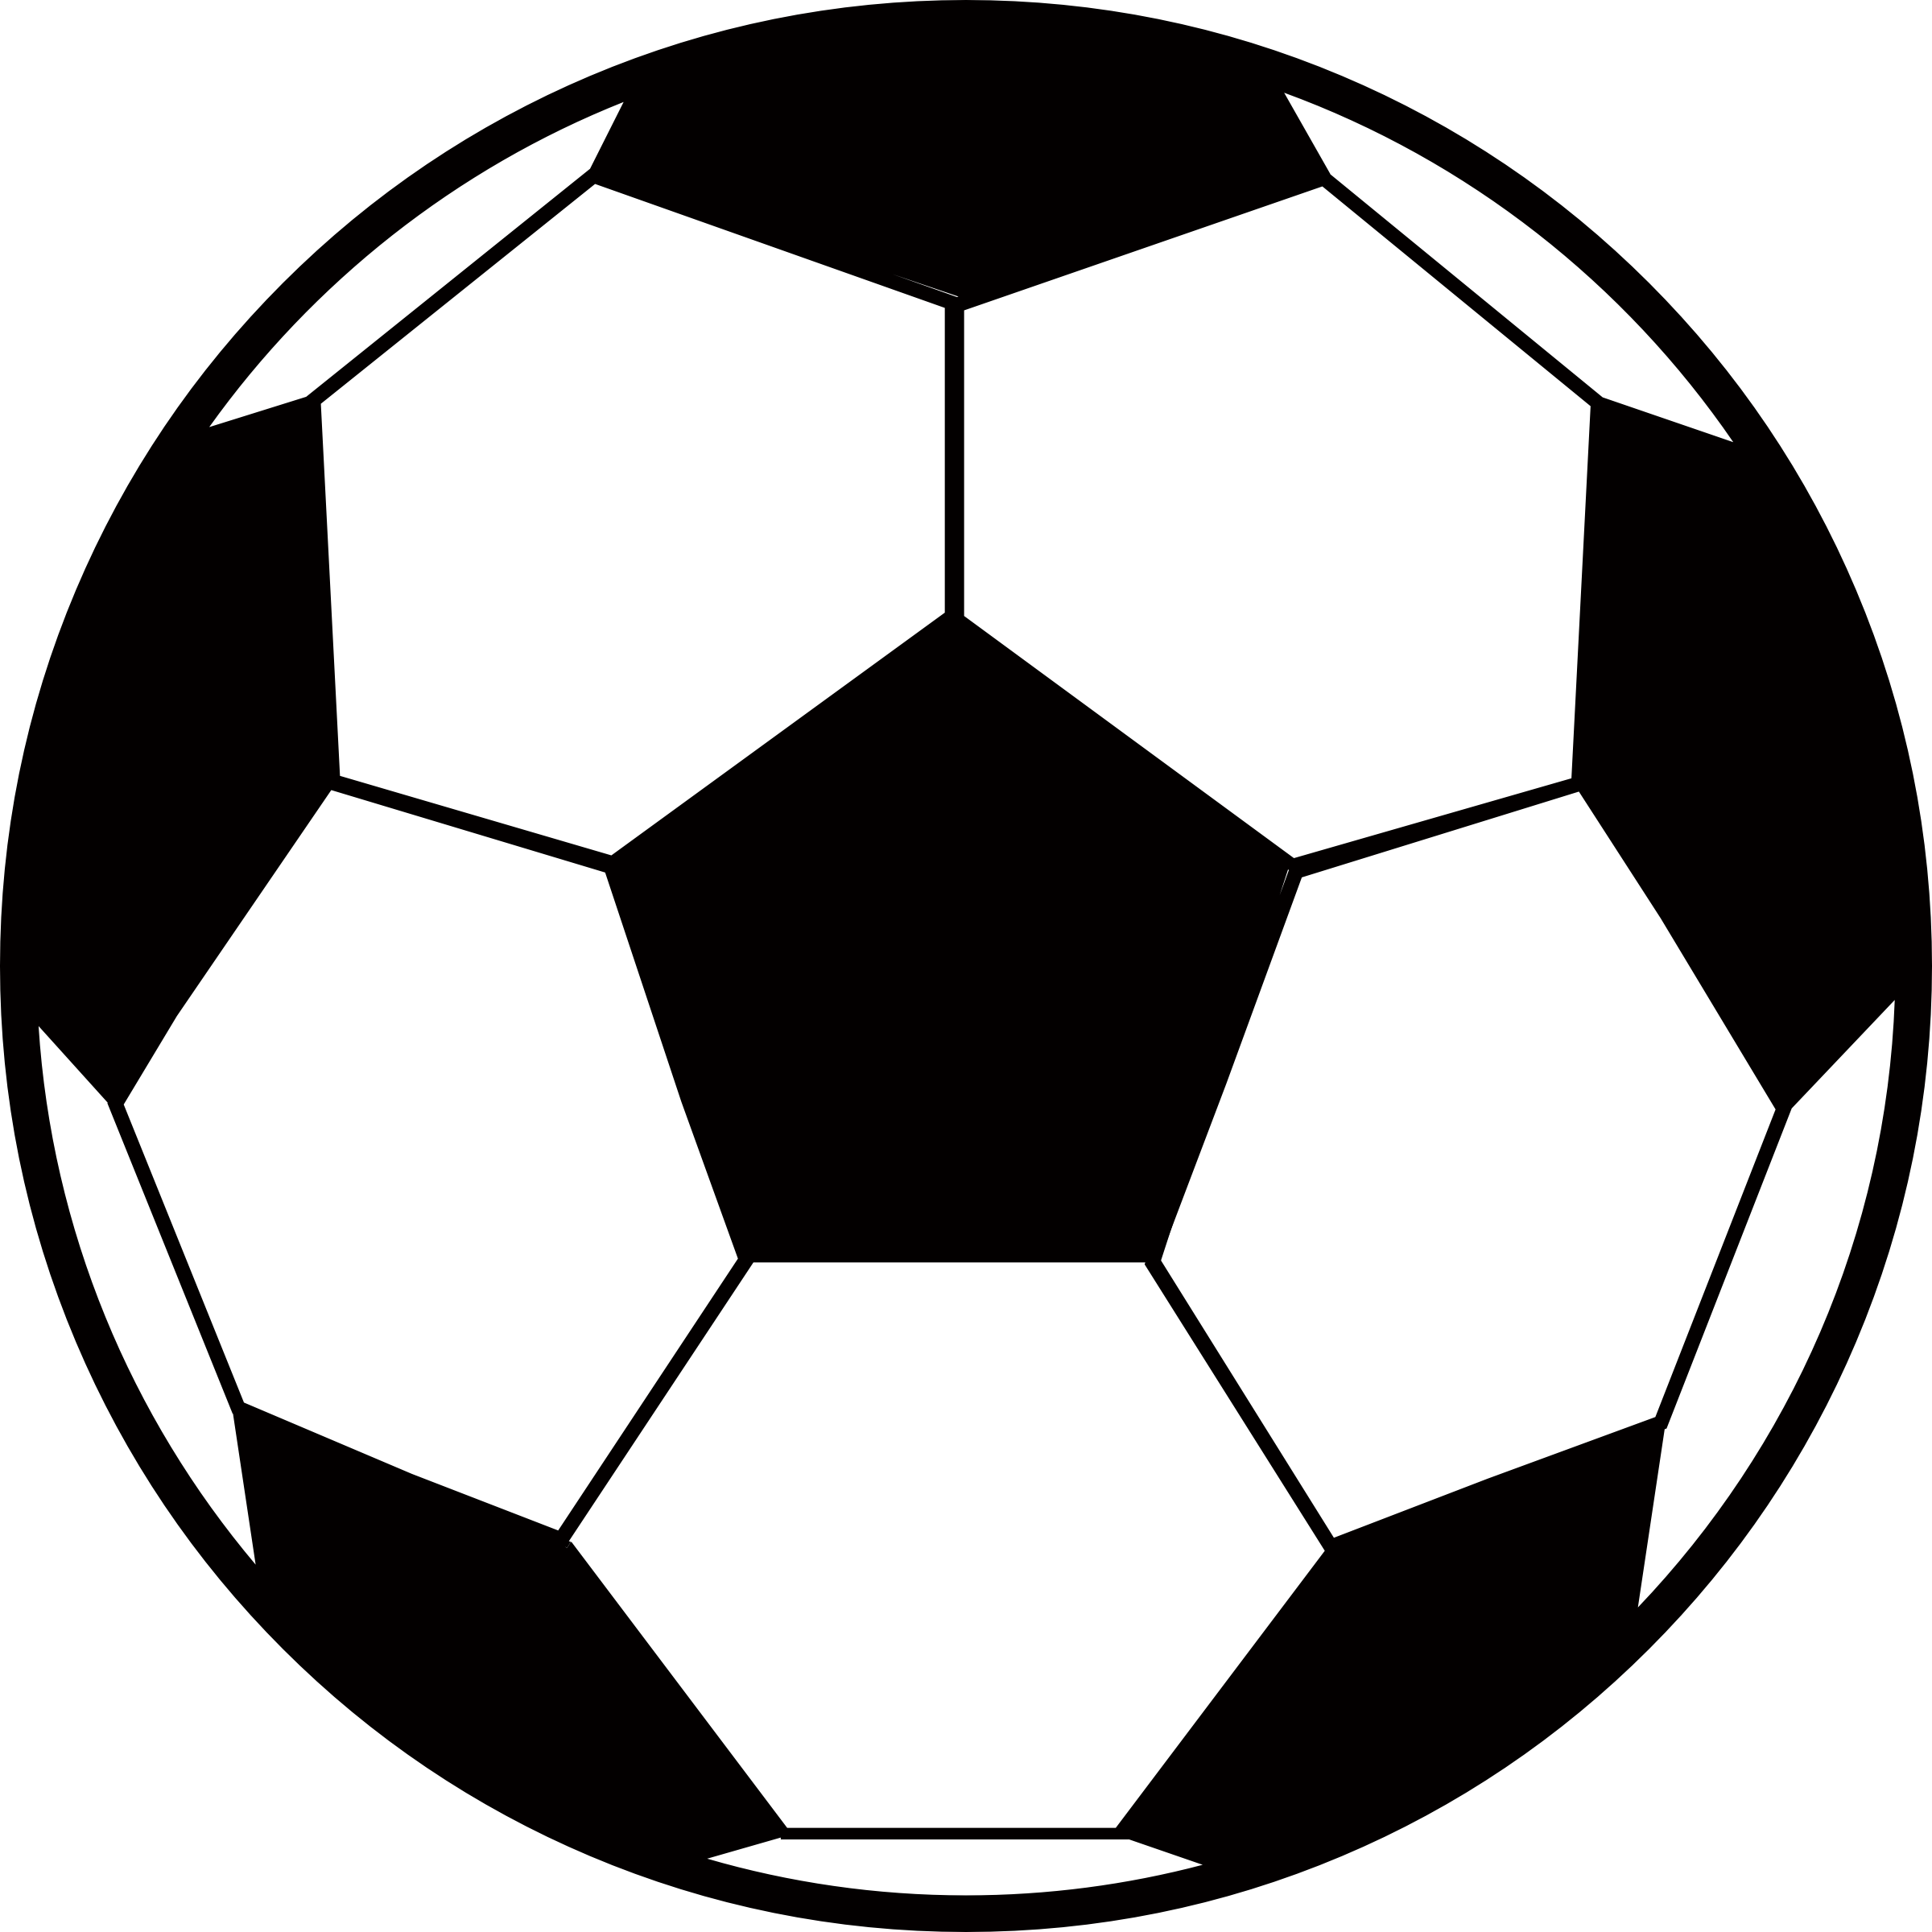 Clipart ball soccer, Clipart ball soccer Transparent FREE.